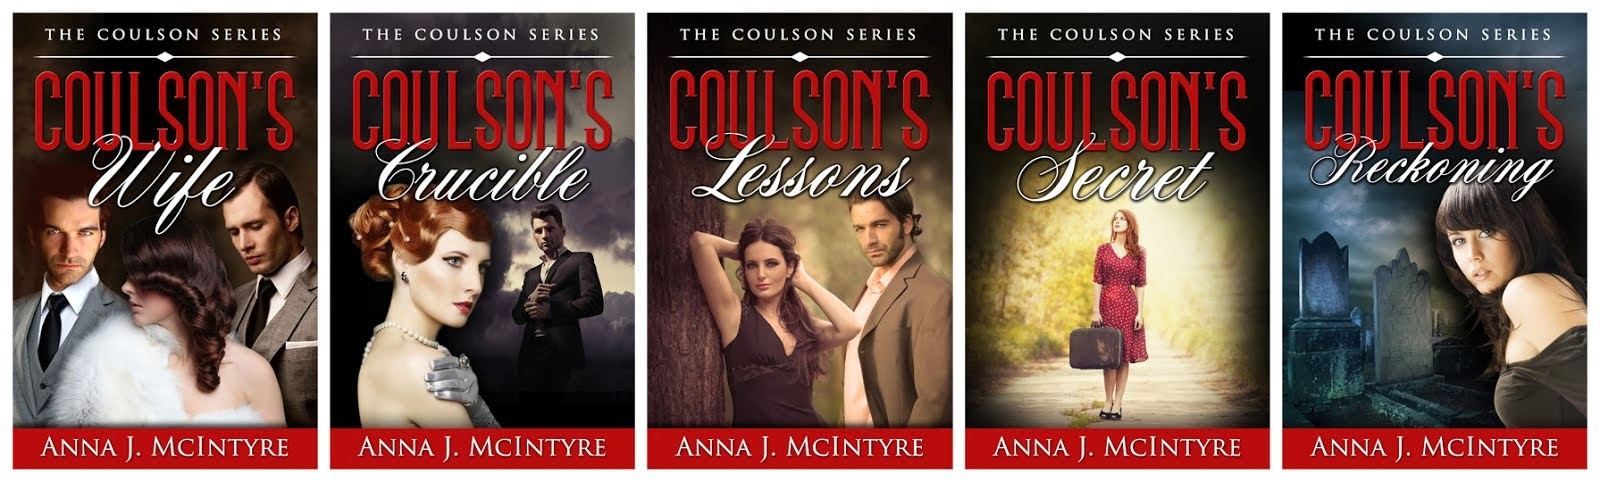 The Coulson Series